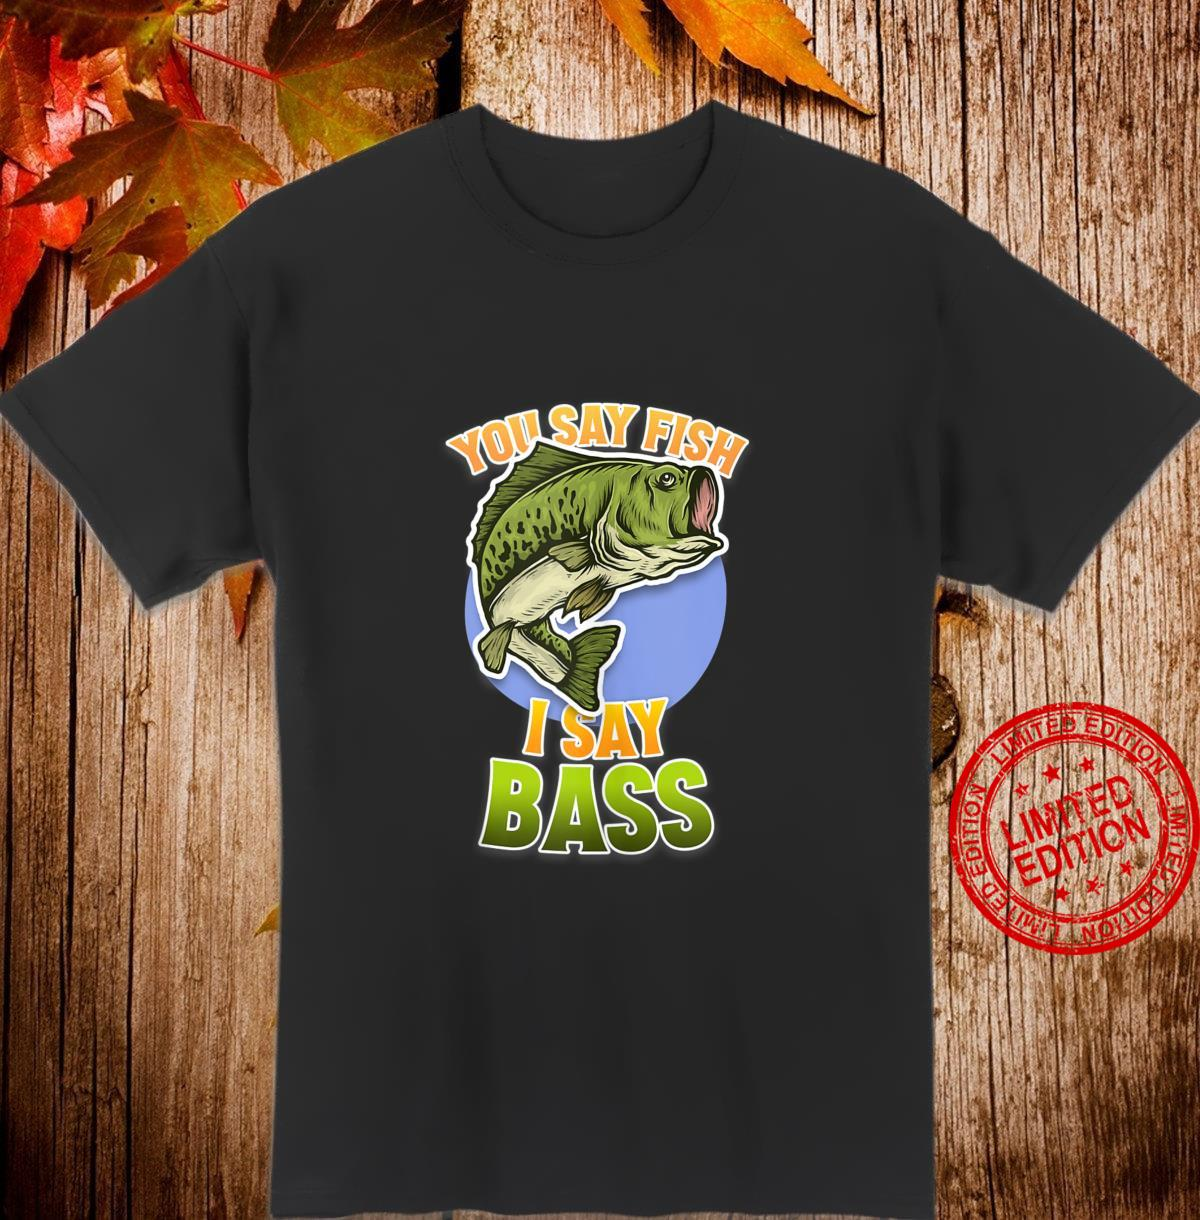 You Say Fish I Fay Bass Fishing Shirt